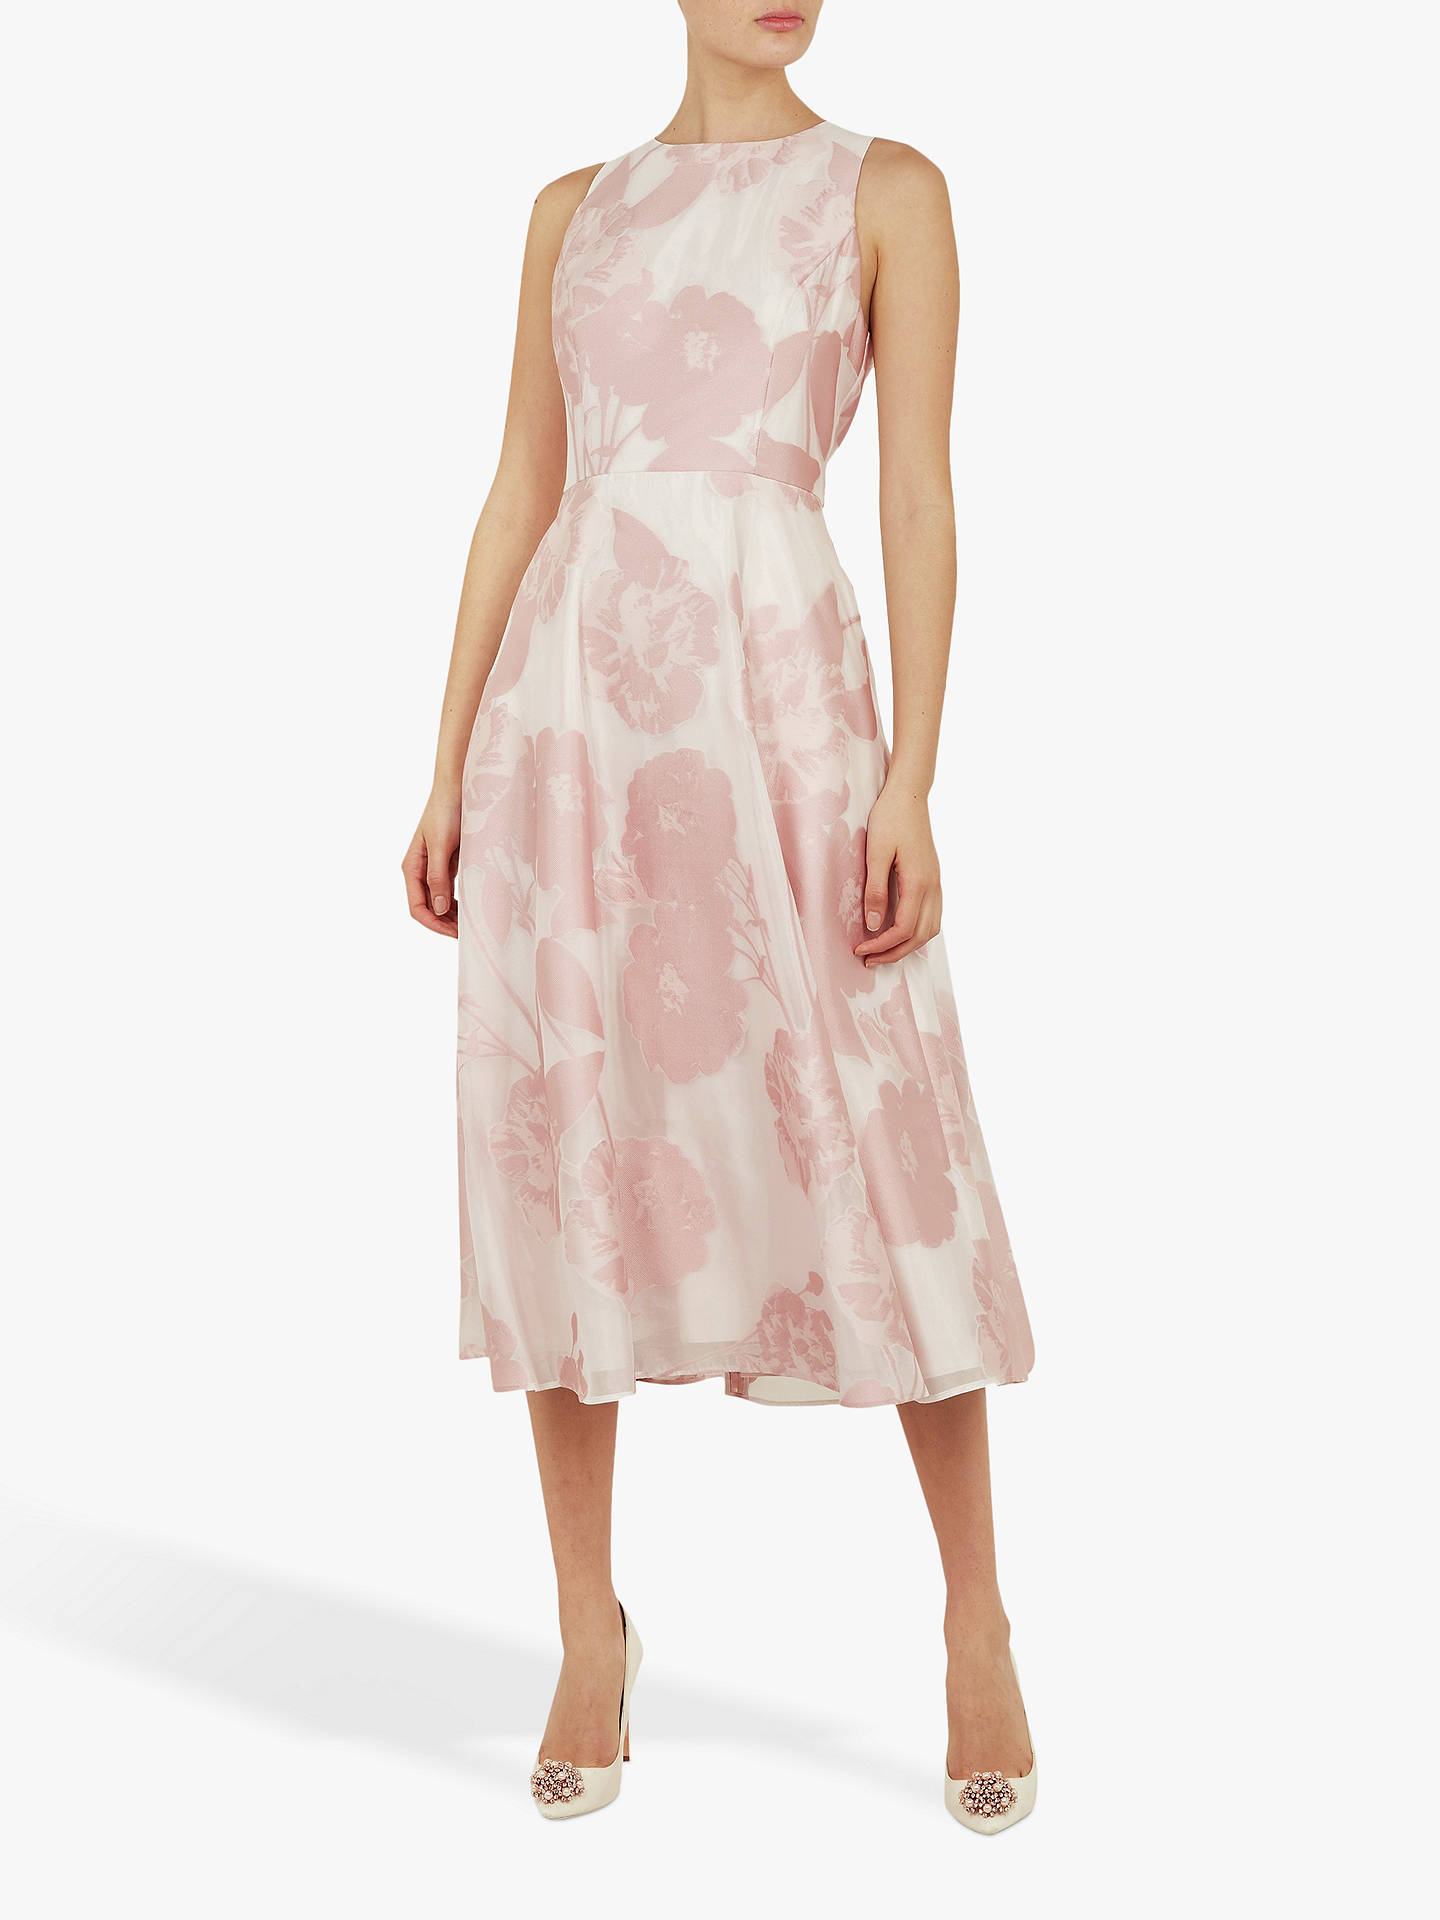 720cf59e35d4 Buy Ted Baker Wylieh Floral Jacquard Midi Dress, Light Pink, L Online at  johnlewis ...